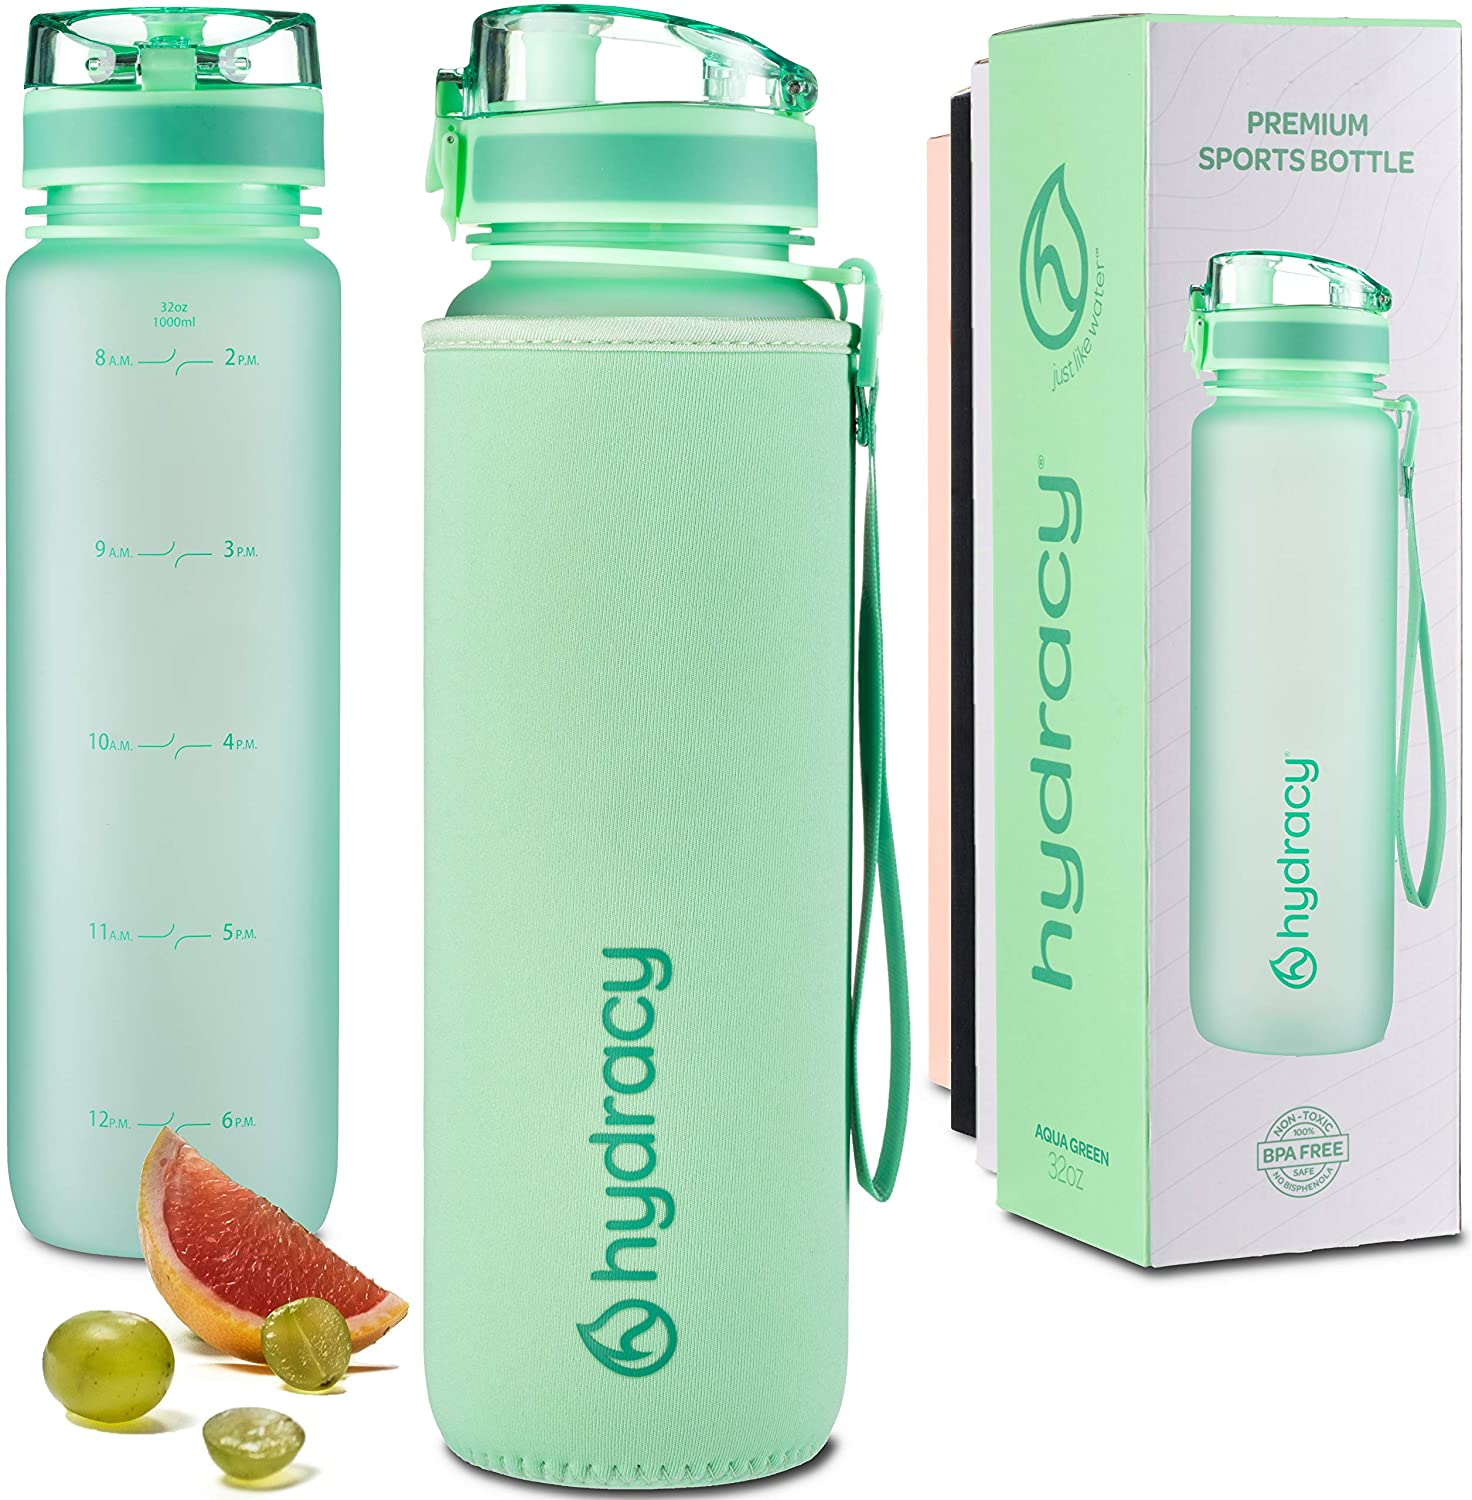 Hydracy Water Bottle with Time Marker - Large 1 Liter 32 Oz BPA Free Water Bottle - Leak Proof & No Sweat Gym Bottle with Fruit Infuser Strainer - Ideal for Fitness or Sports & Outdoors - Aqua Green